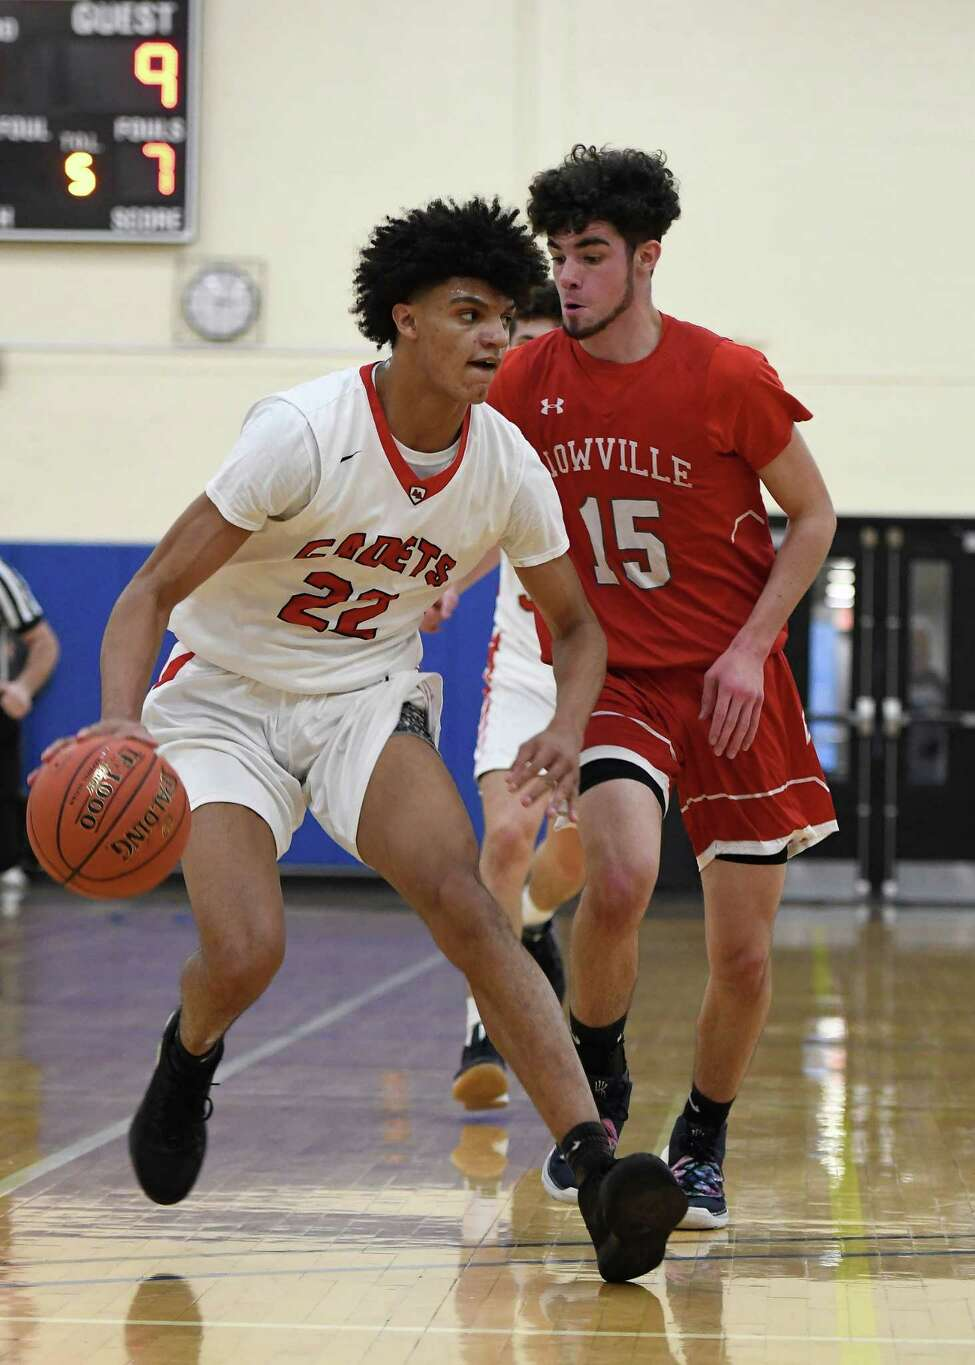 Albany Academy's Andre Jackson dribbles the ball past Lowville's Aiden Zehr during a coaches versus cancer tournament game at Fulton-Montgomery Community College in Johnstown, N.Y., on Saturday, Dec. 14, 2019. (Jenn March, Special to the Times Union)